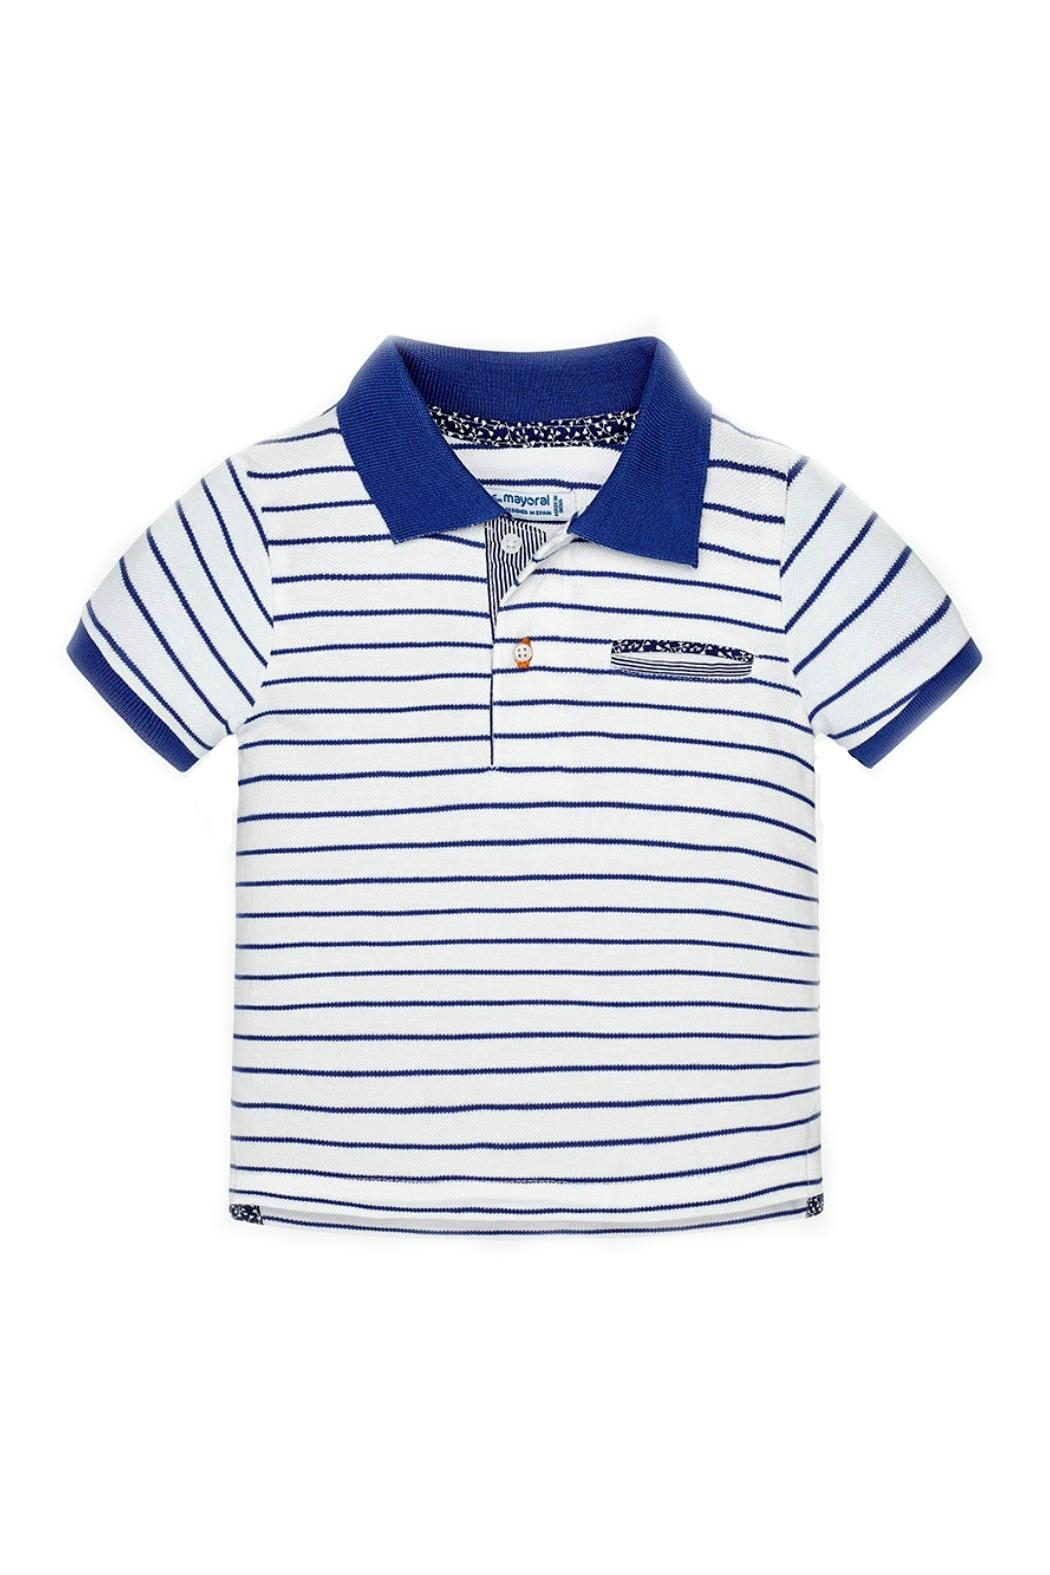 Mayoral Baby Boy Striped Polo Shirt From South Carolina By The